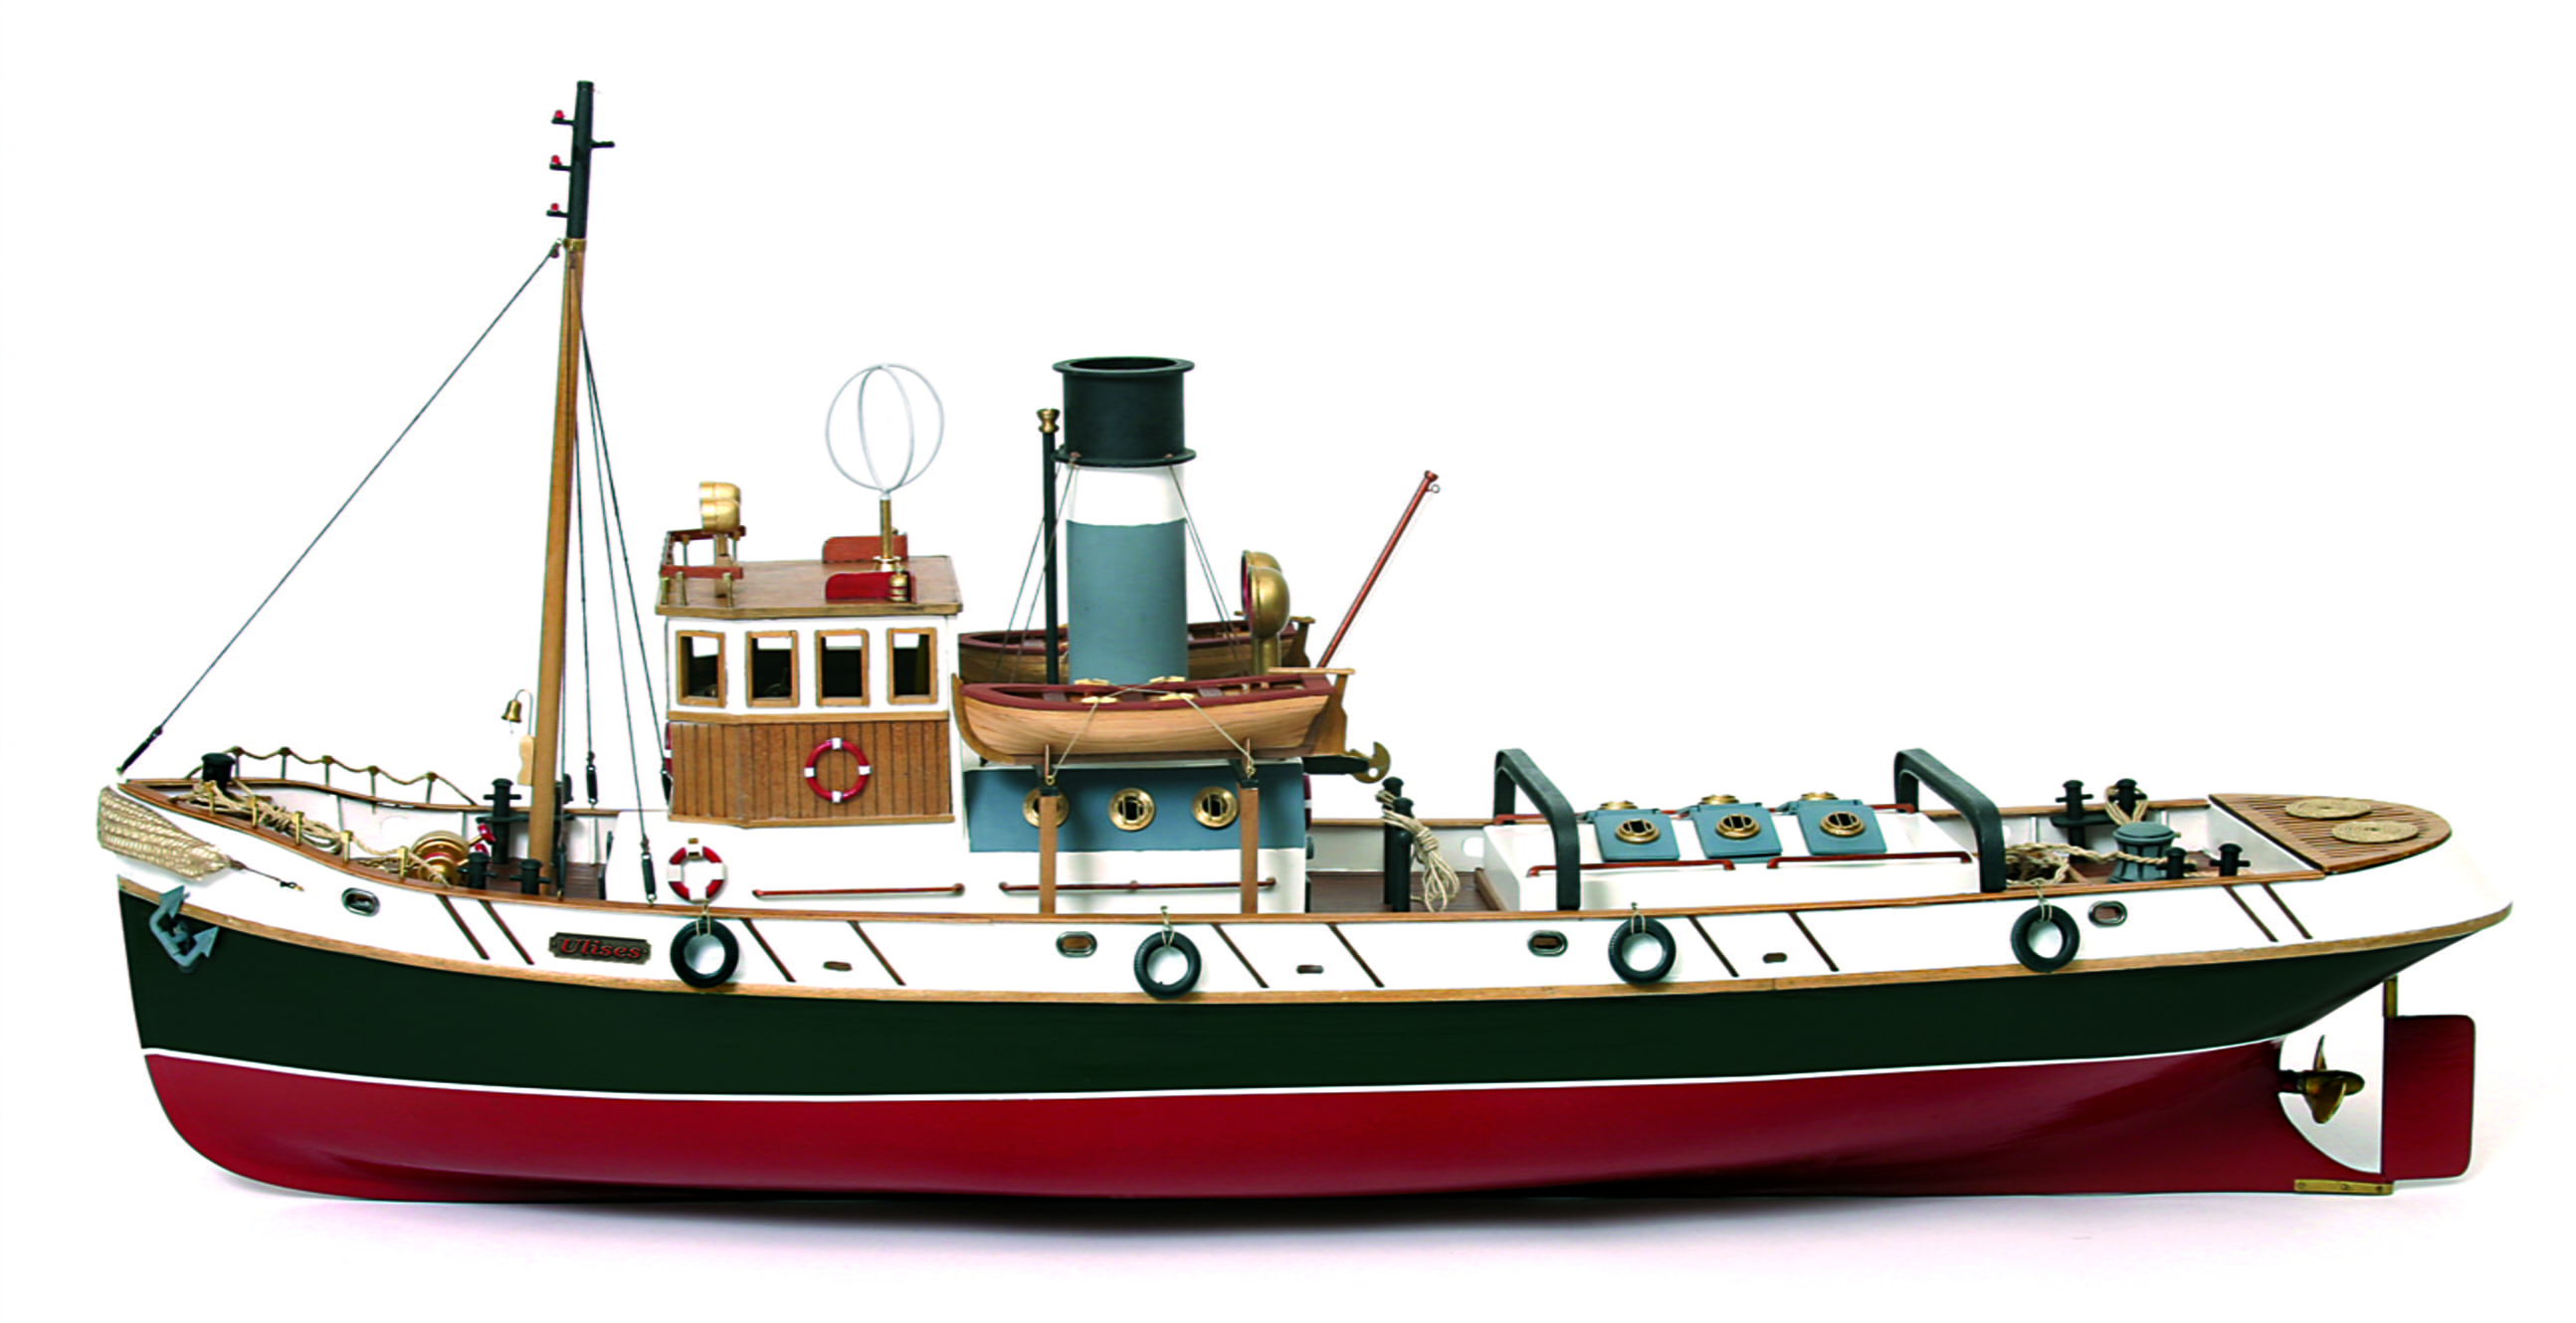 Occre Ulises Tug 1:30 Scale Model RC Wood & Metal Boat Kit| Hobbies